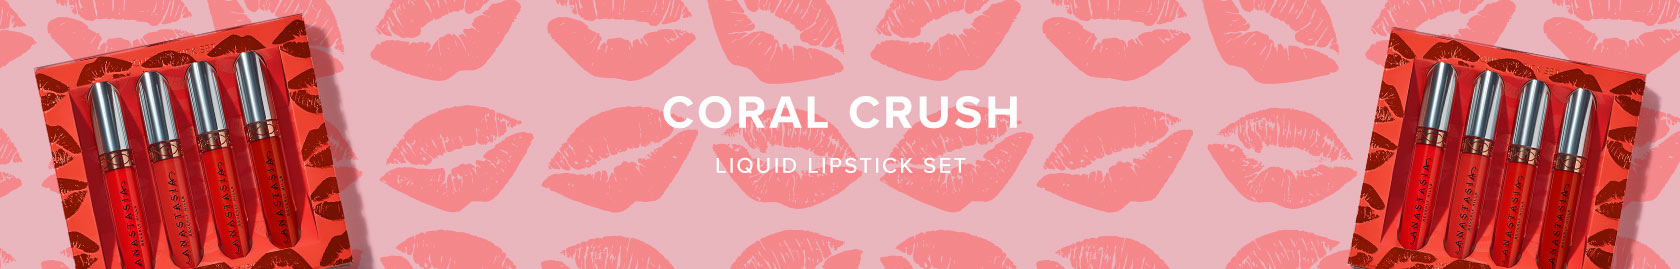 Coral Crush Liquid Lipstick Set